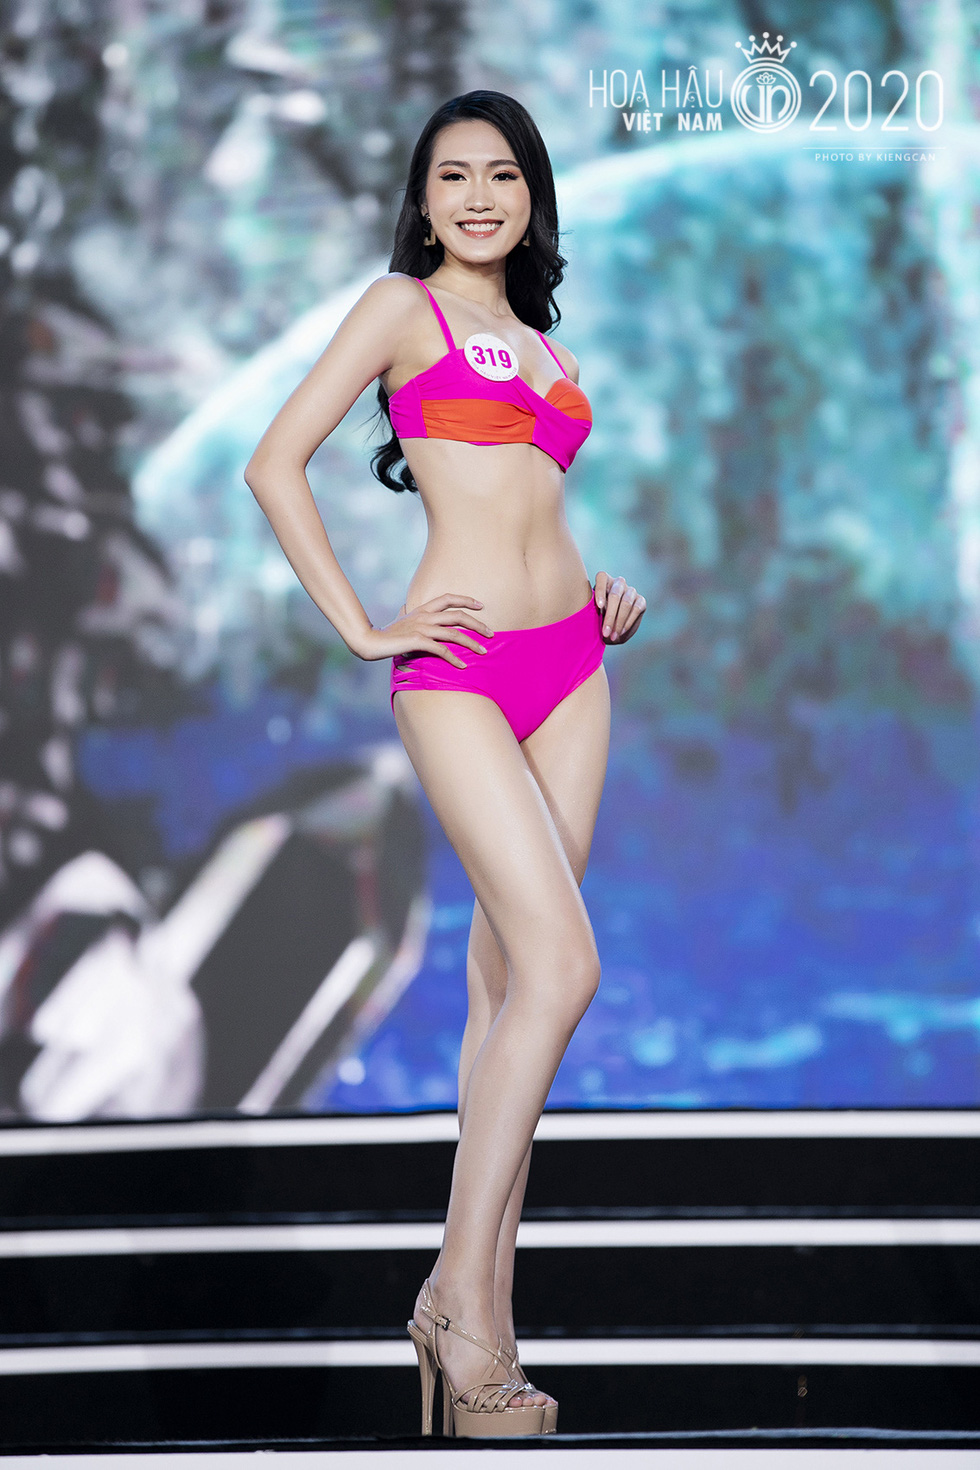 35 bright faces, who will be Miss Vietnam in the final November 21?  - Photo 4.